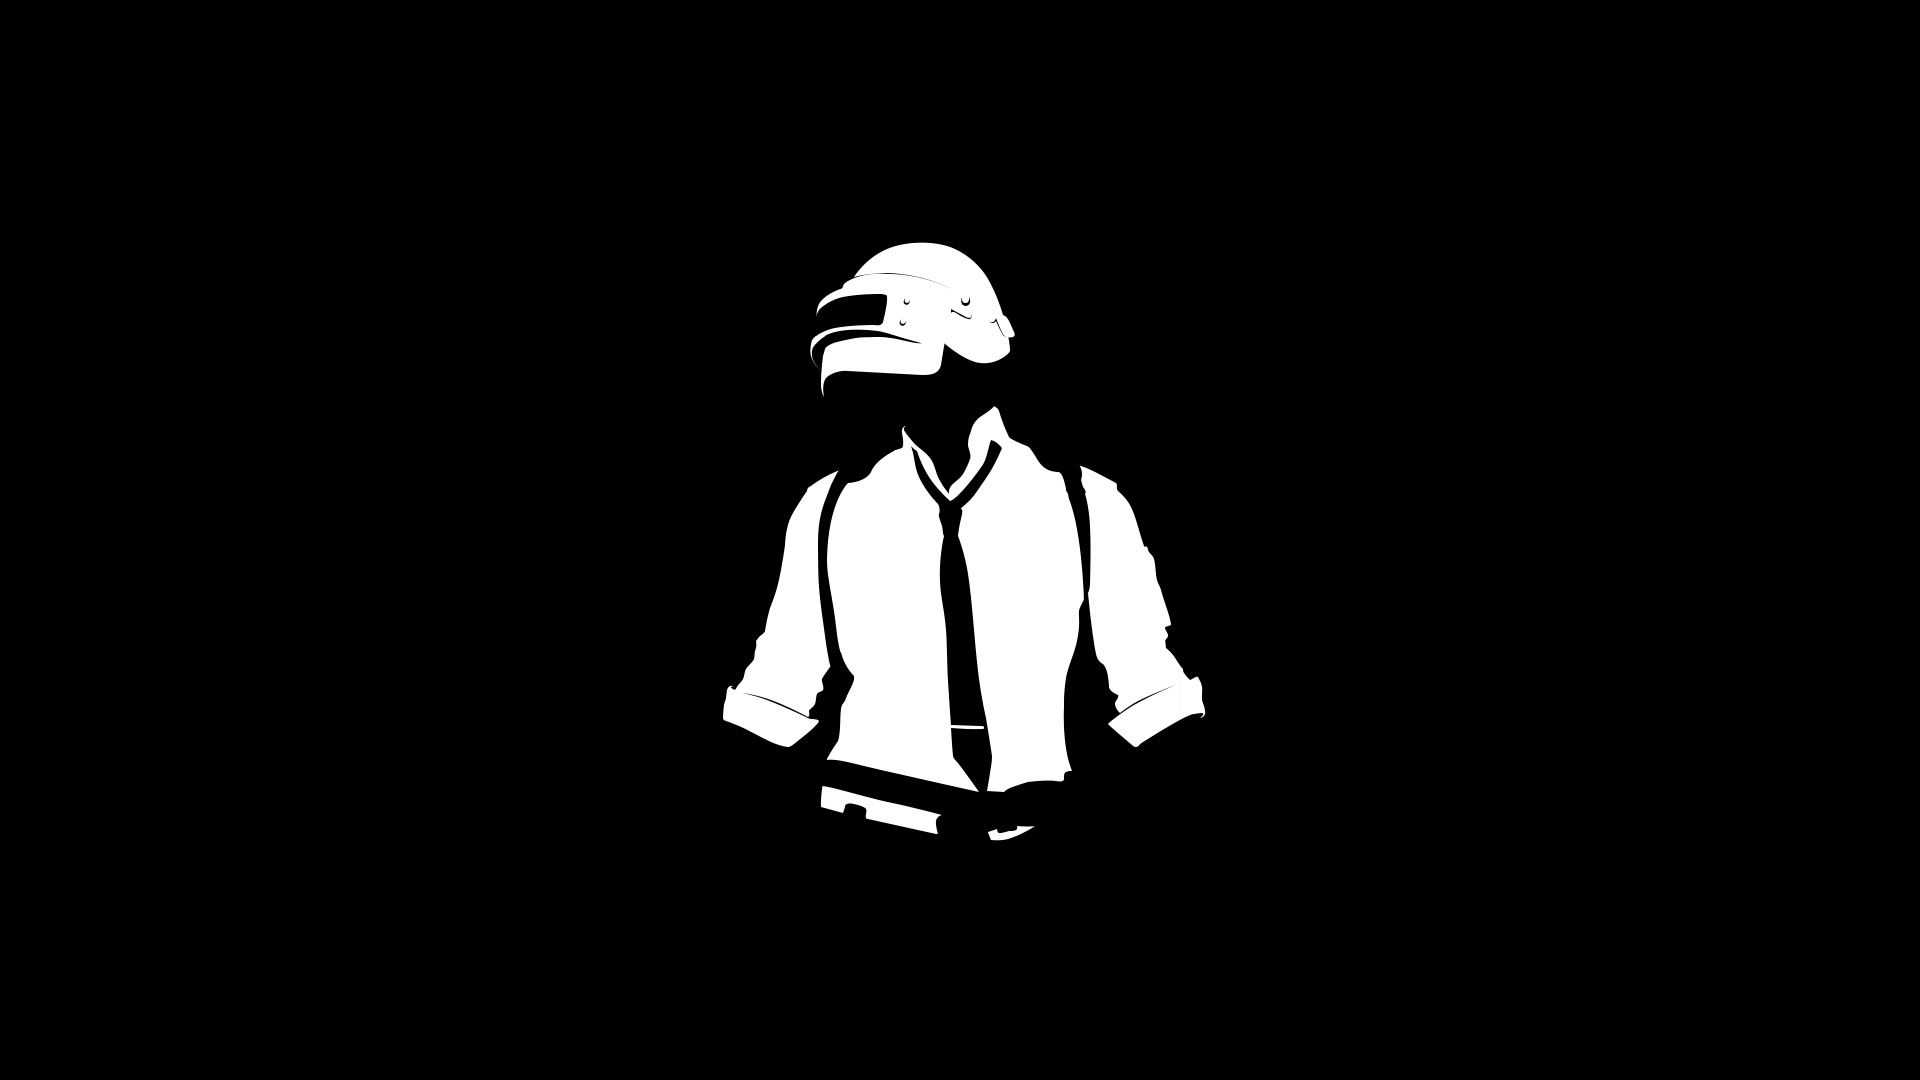 Pubg Helmet Wallpaper 4k: PUBG HD Wallpapers